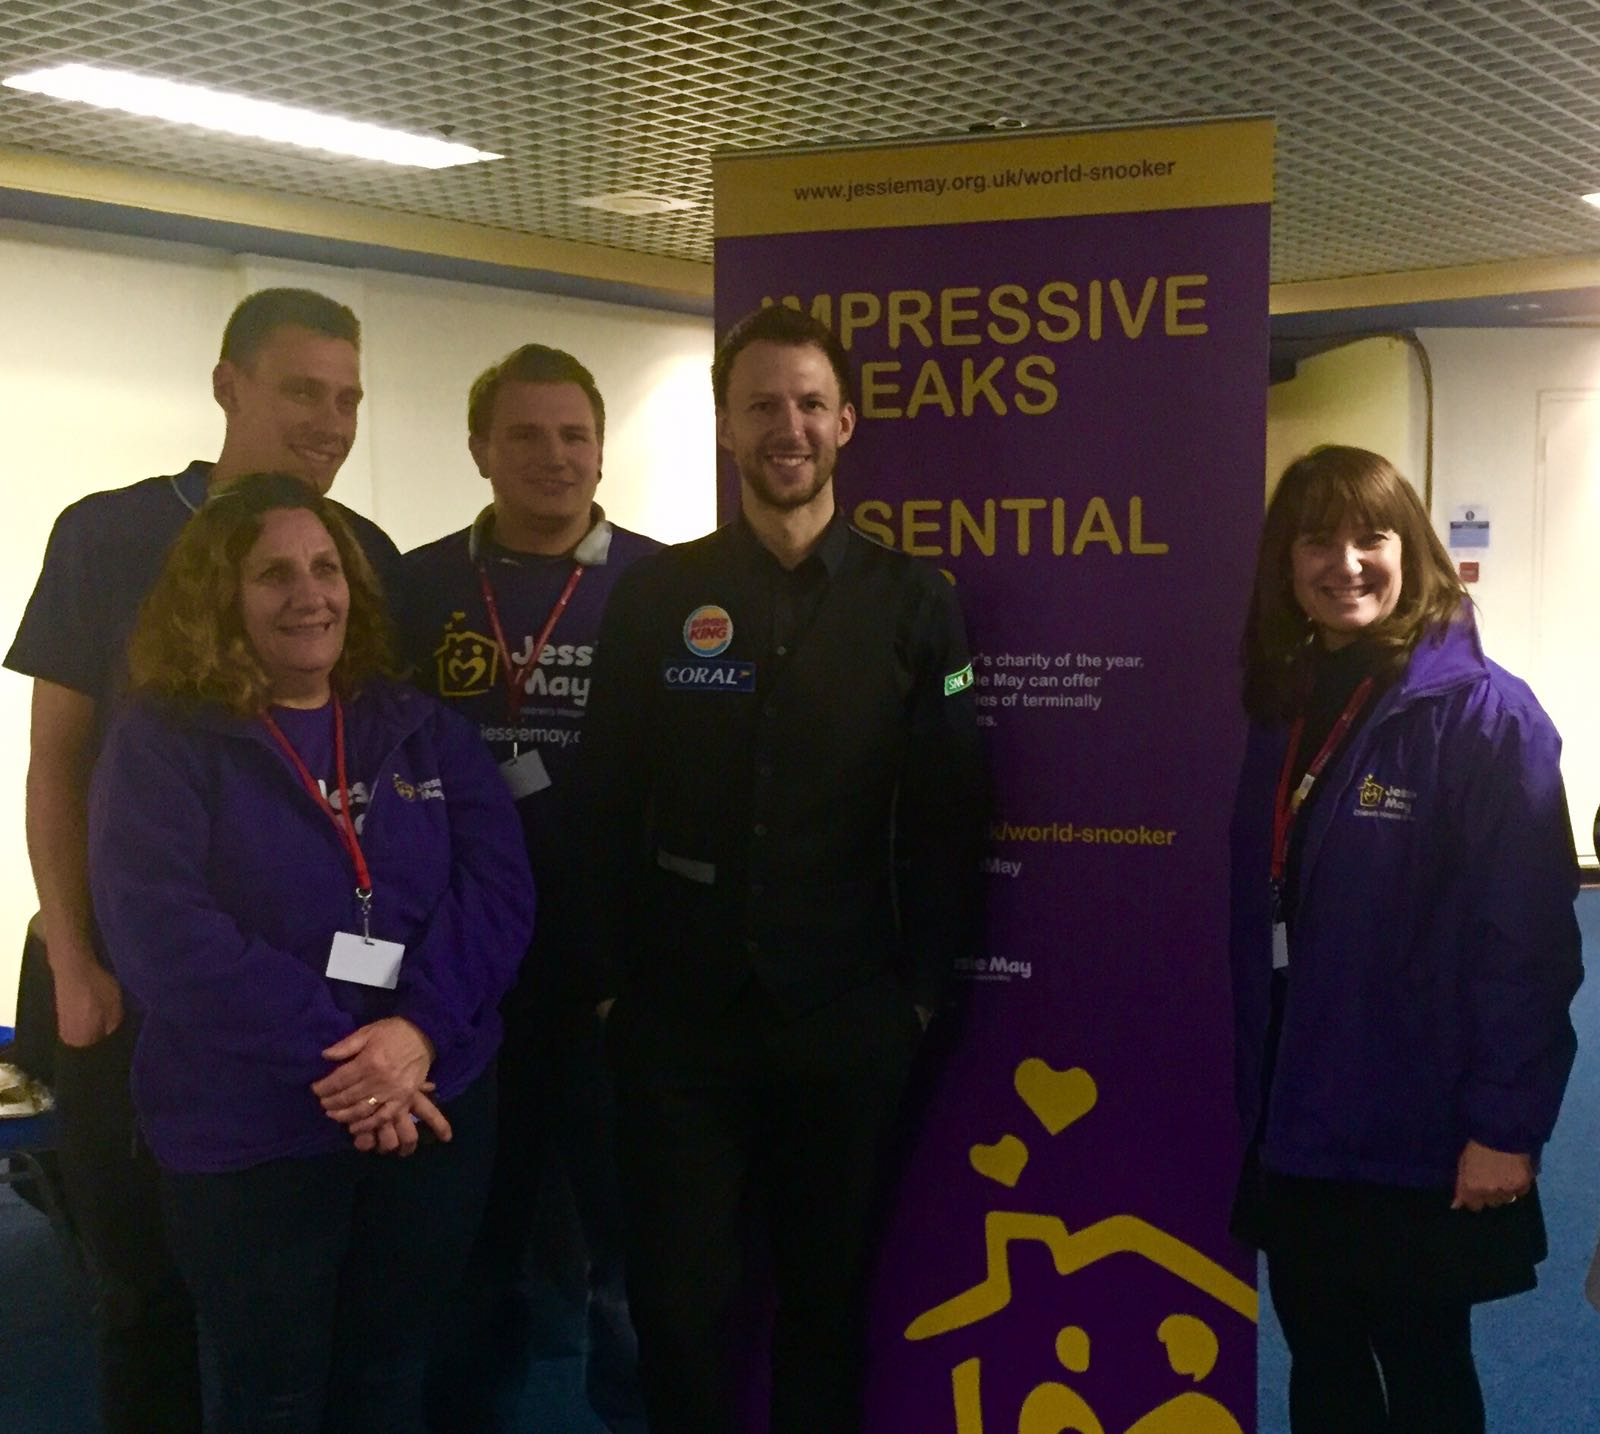 Judd Trump with the team from Jessie May